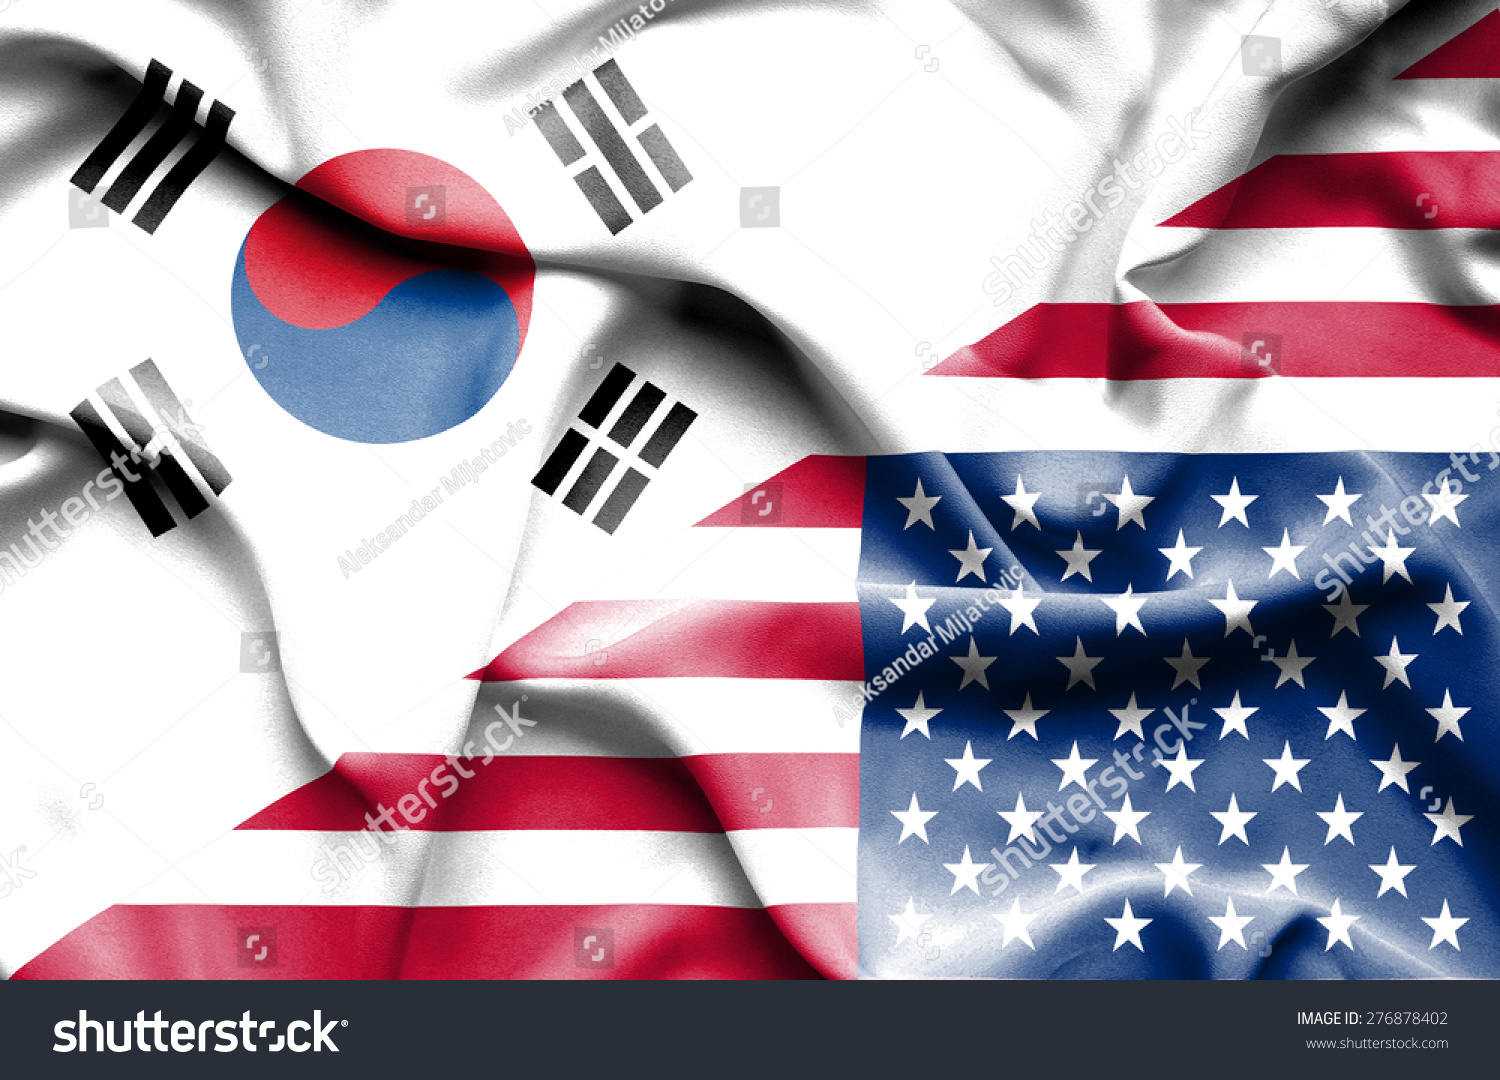 korea and united states relationship